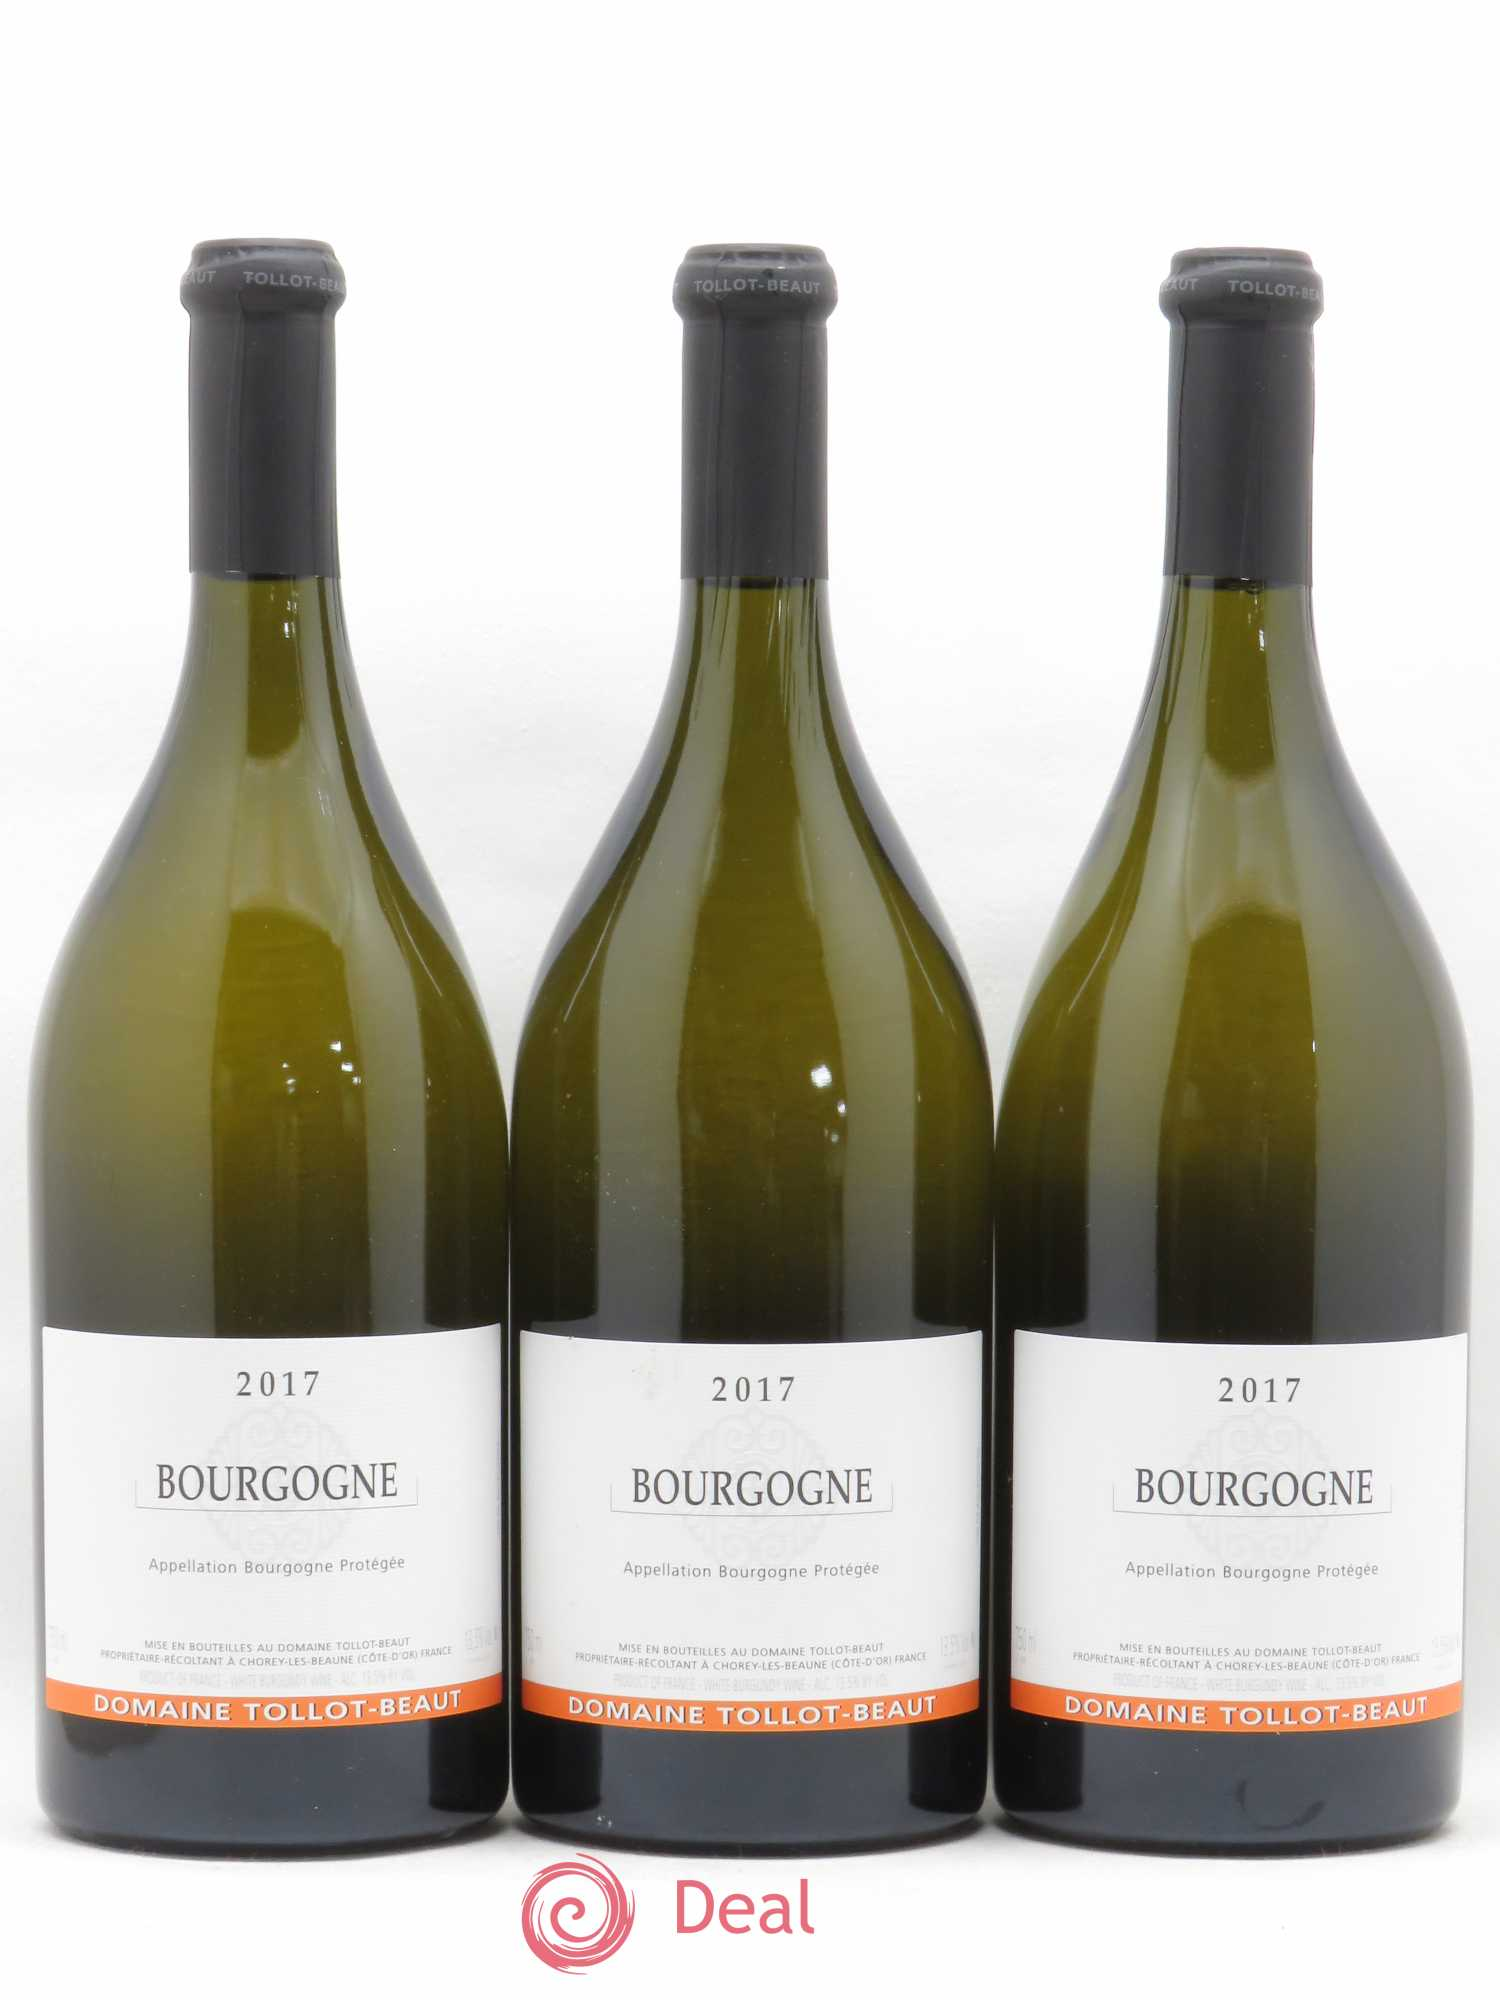 Bourgogne Chardonnay Tollot Beaut (Domaine)  2017 - Lot of 3 Bottles